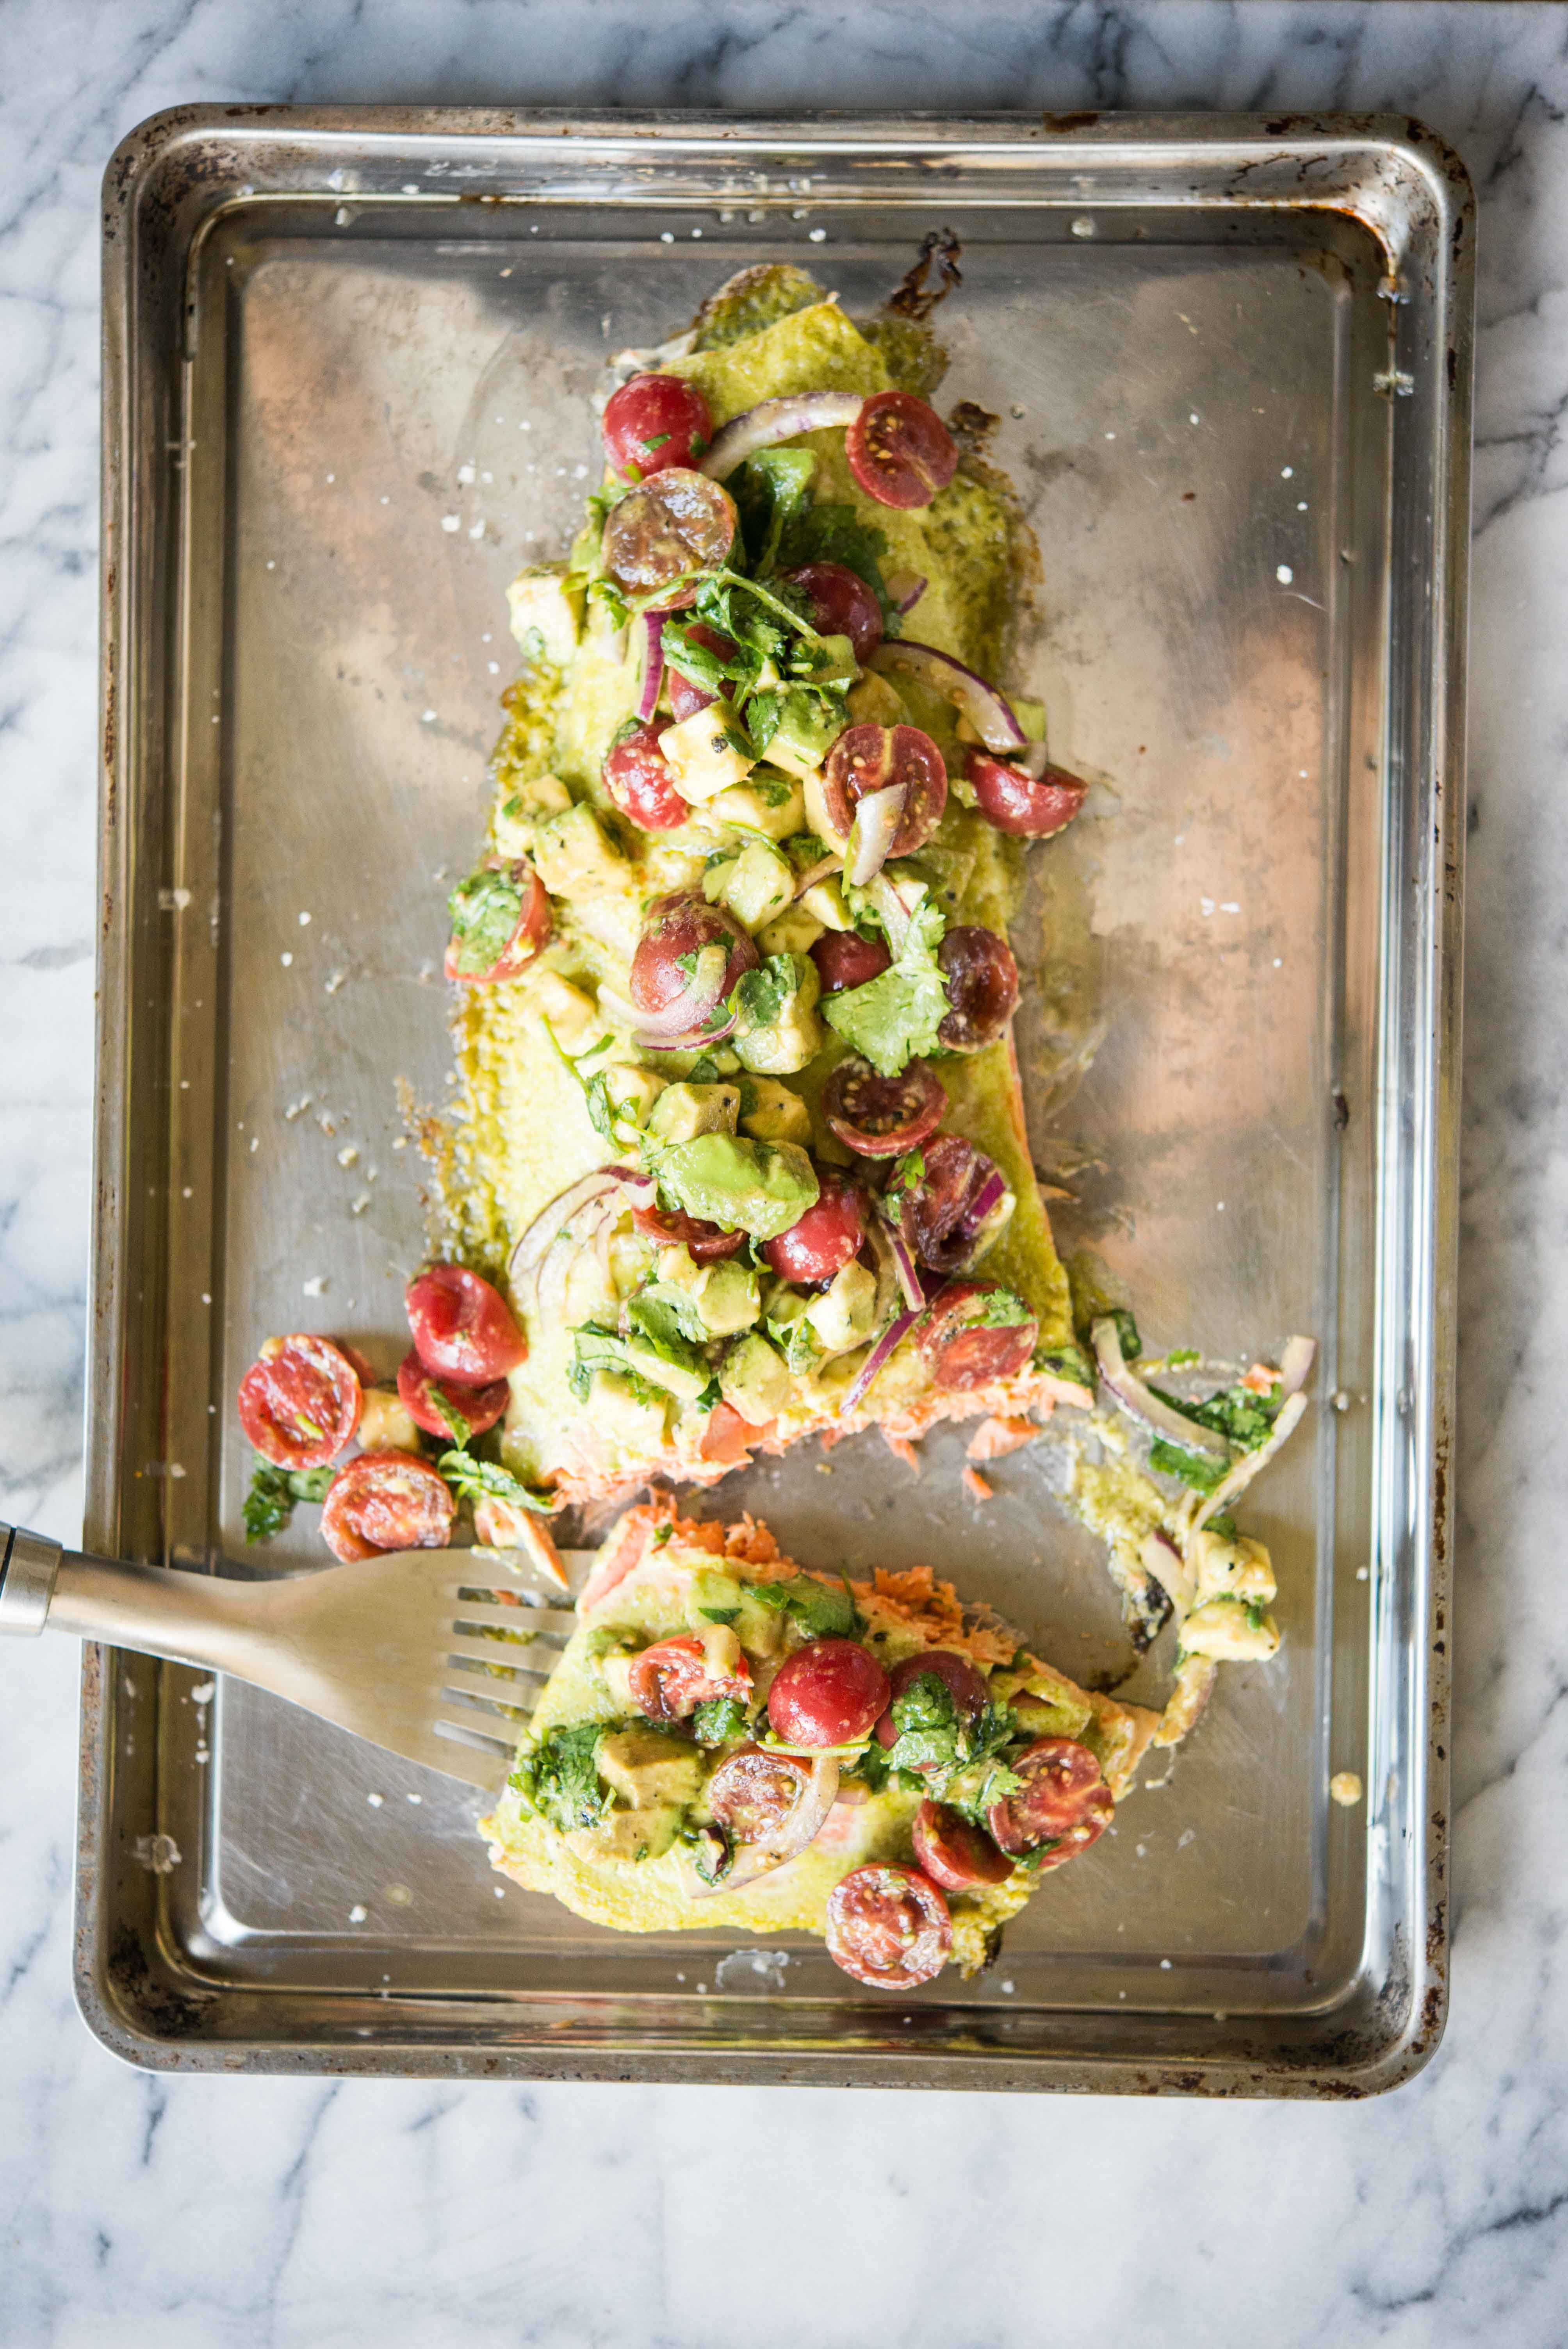 cilantro lime salmon bake topped with tomato avocado salsa on a sheet pan